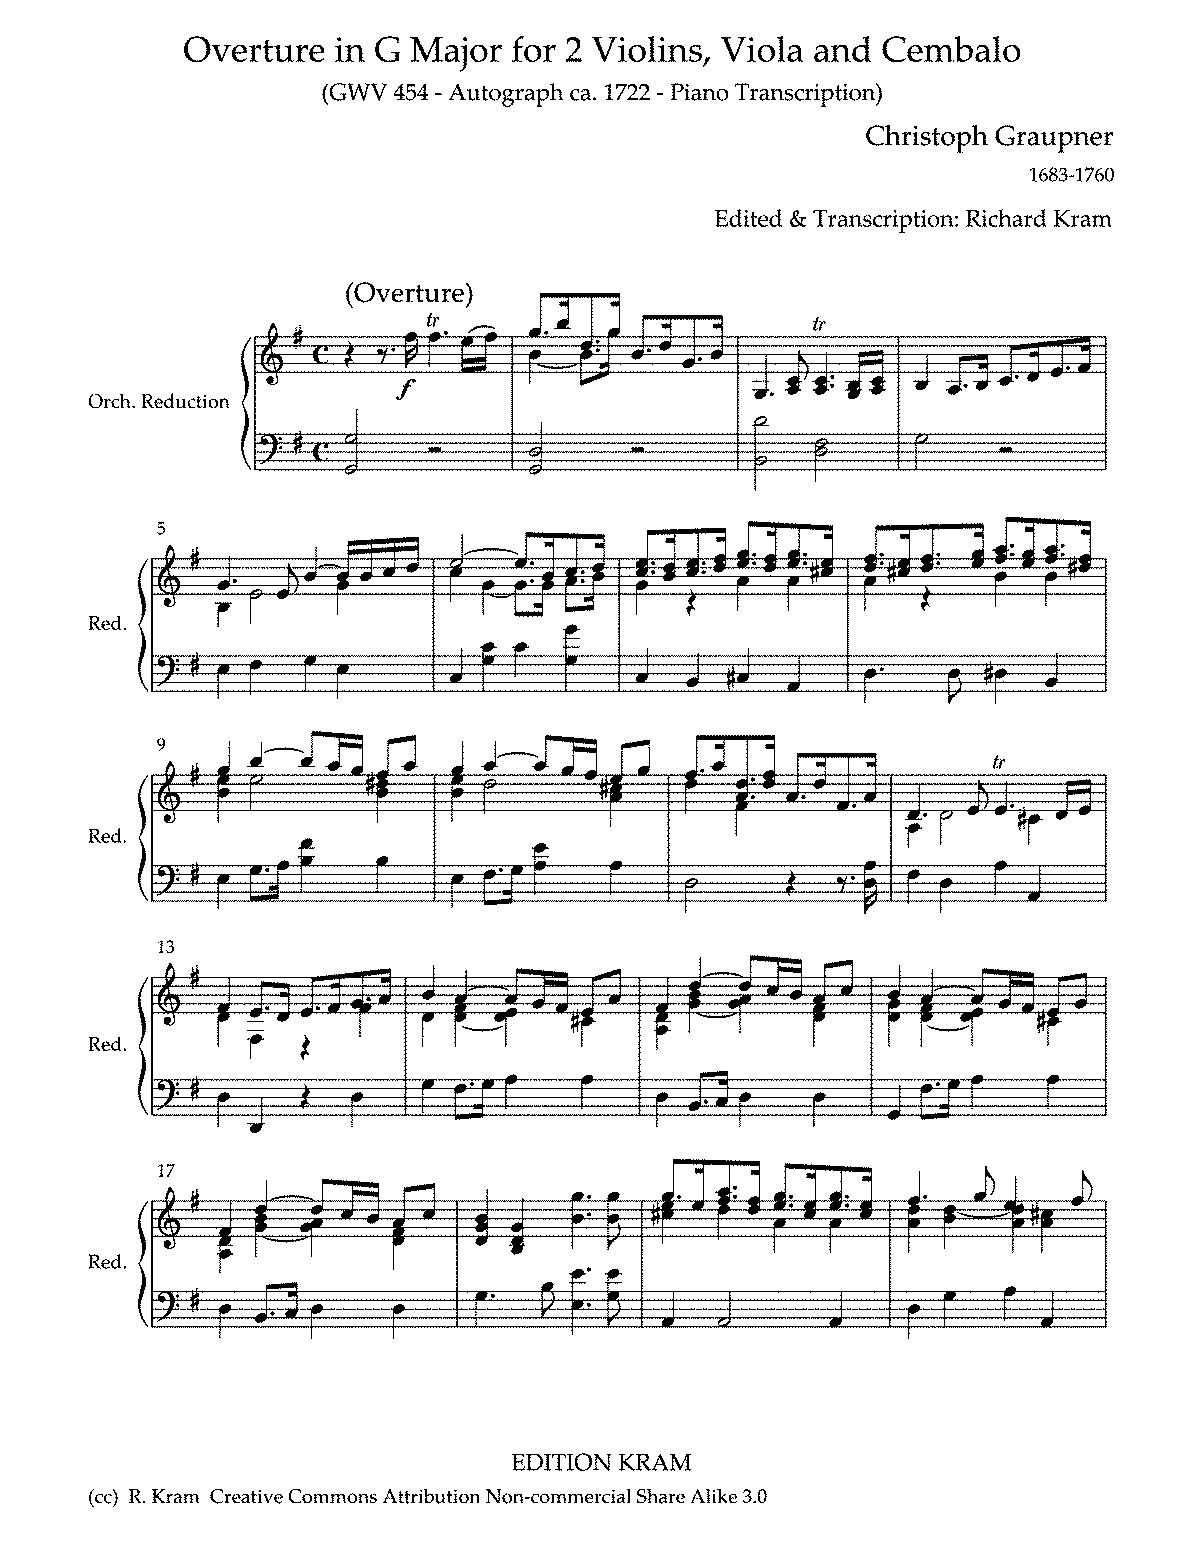 PMLP170472-Graupner Overture in G GWV 454 Piano Trans.pdf